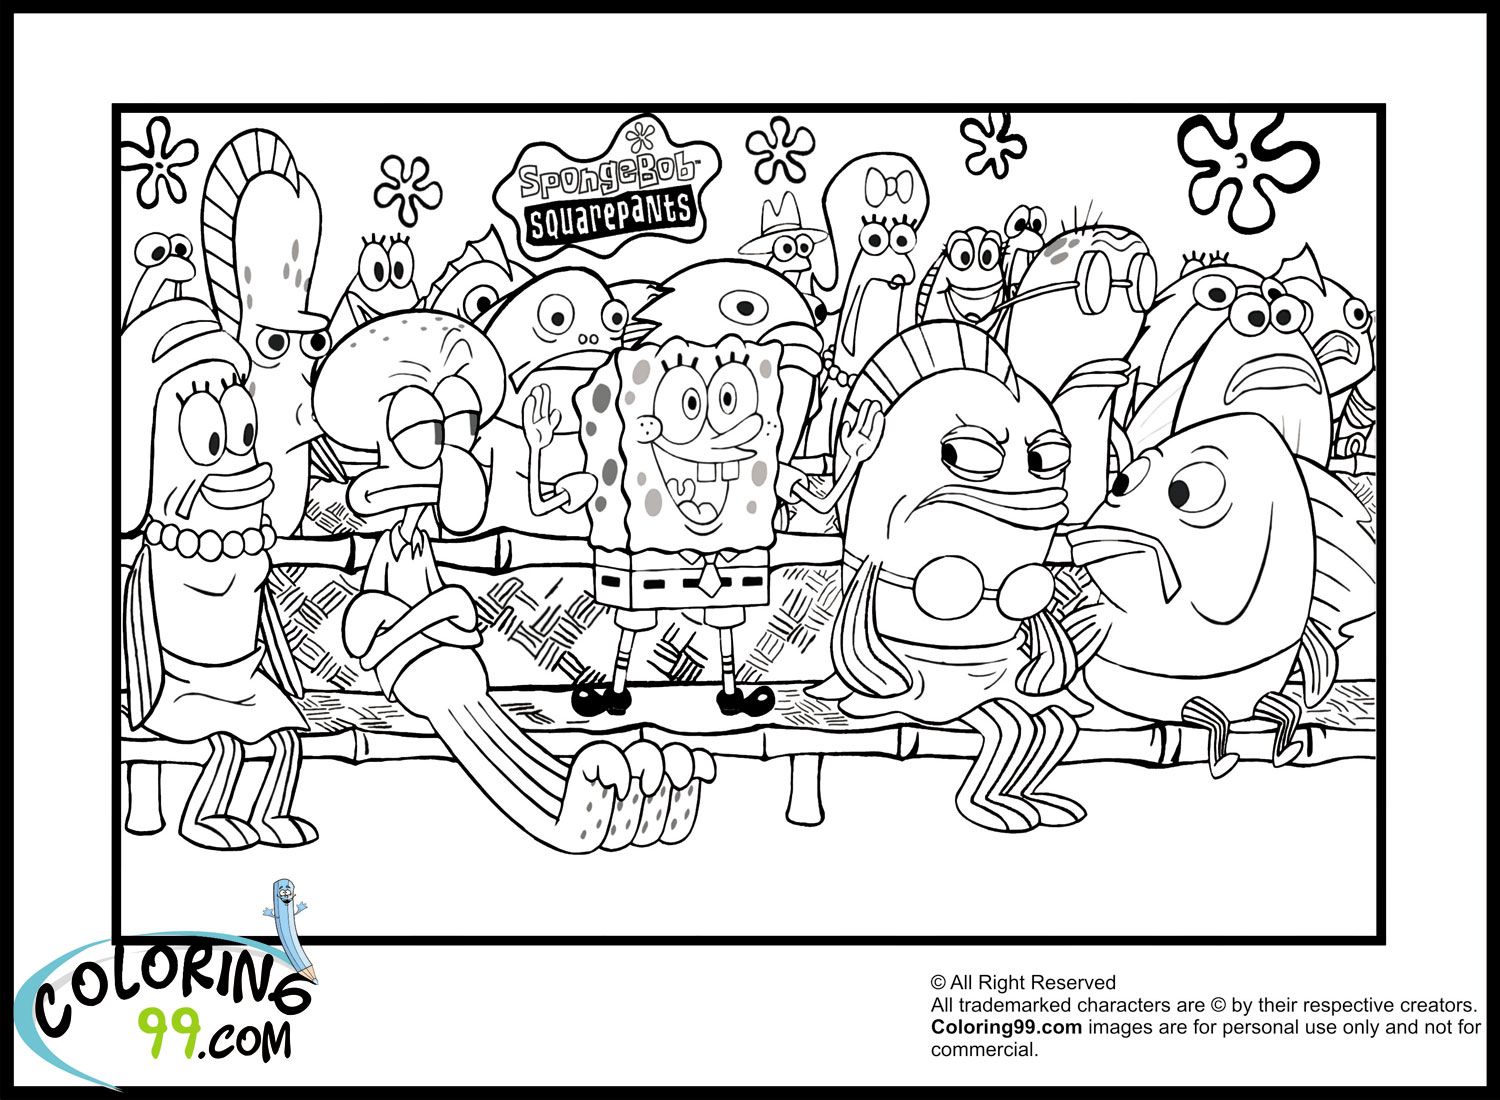 February 2013 team colors for Coloring page spongebob